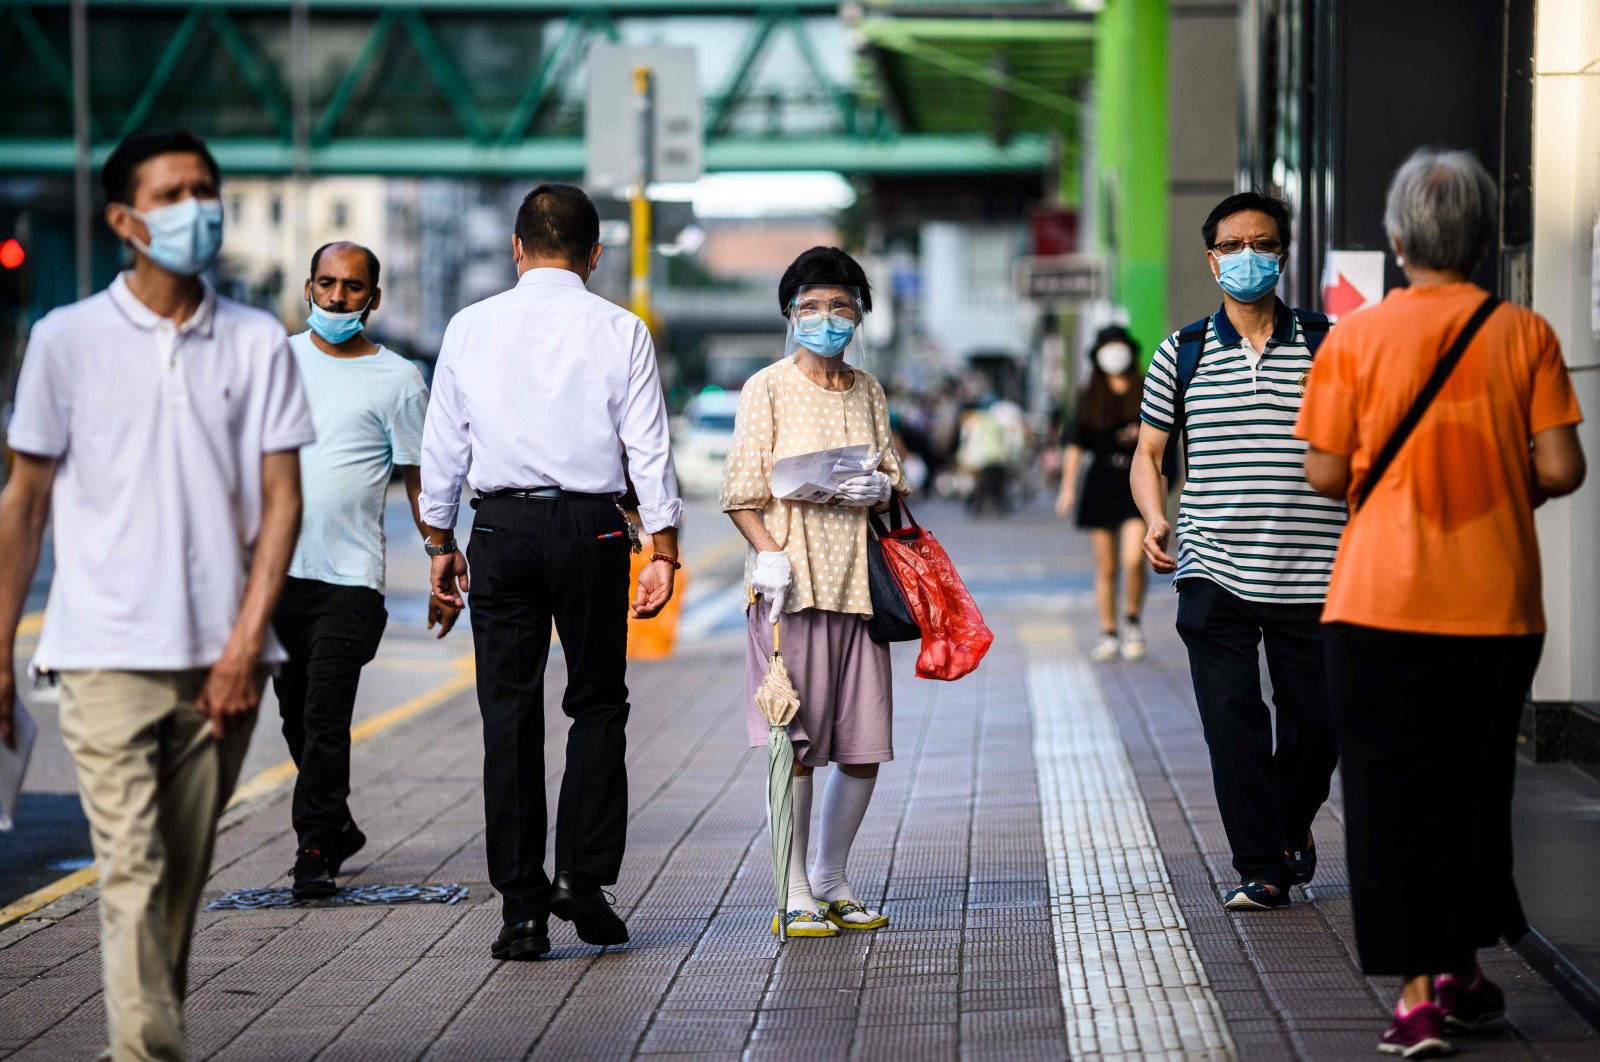 Pedestrians wear face masks in the Kowloon-side Sham Shui Po district of Hong Kong as new social distancing measures come into effect, which include having to wear masks in public to combat a new wave of coronavirus infections, China, July 29, 2020. (AFP Photo)